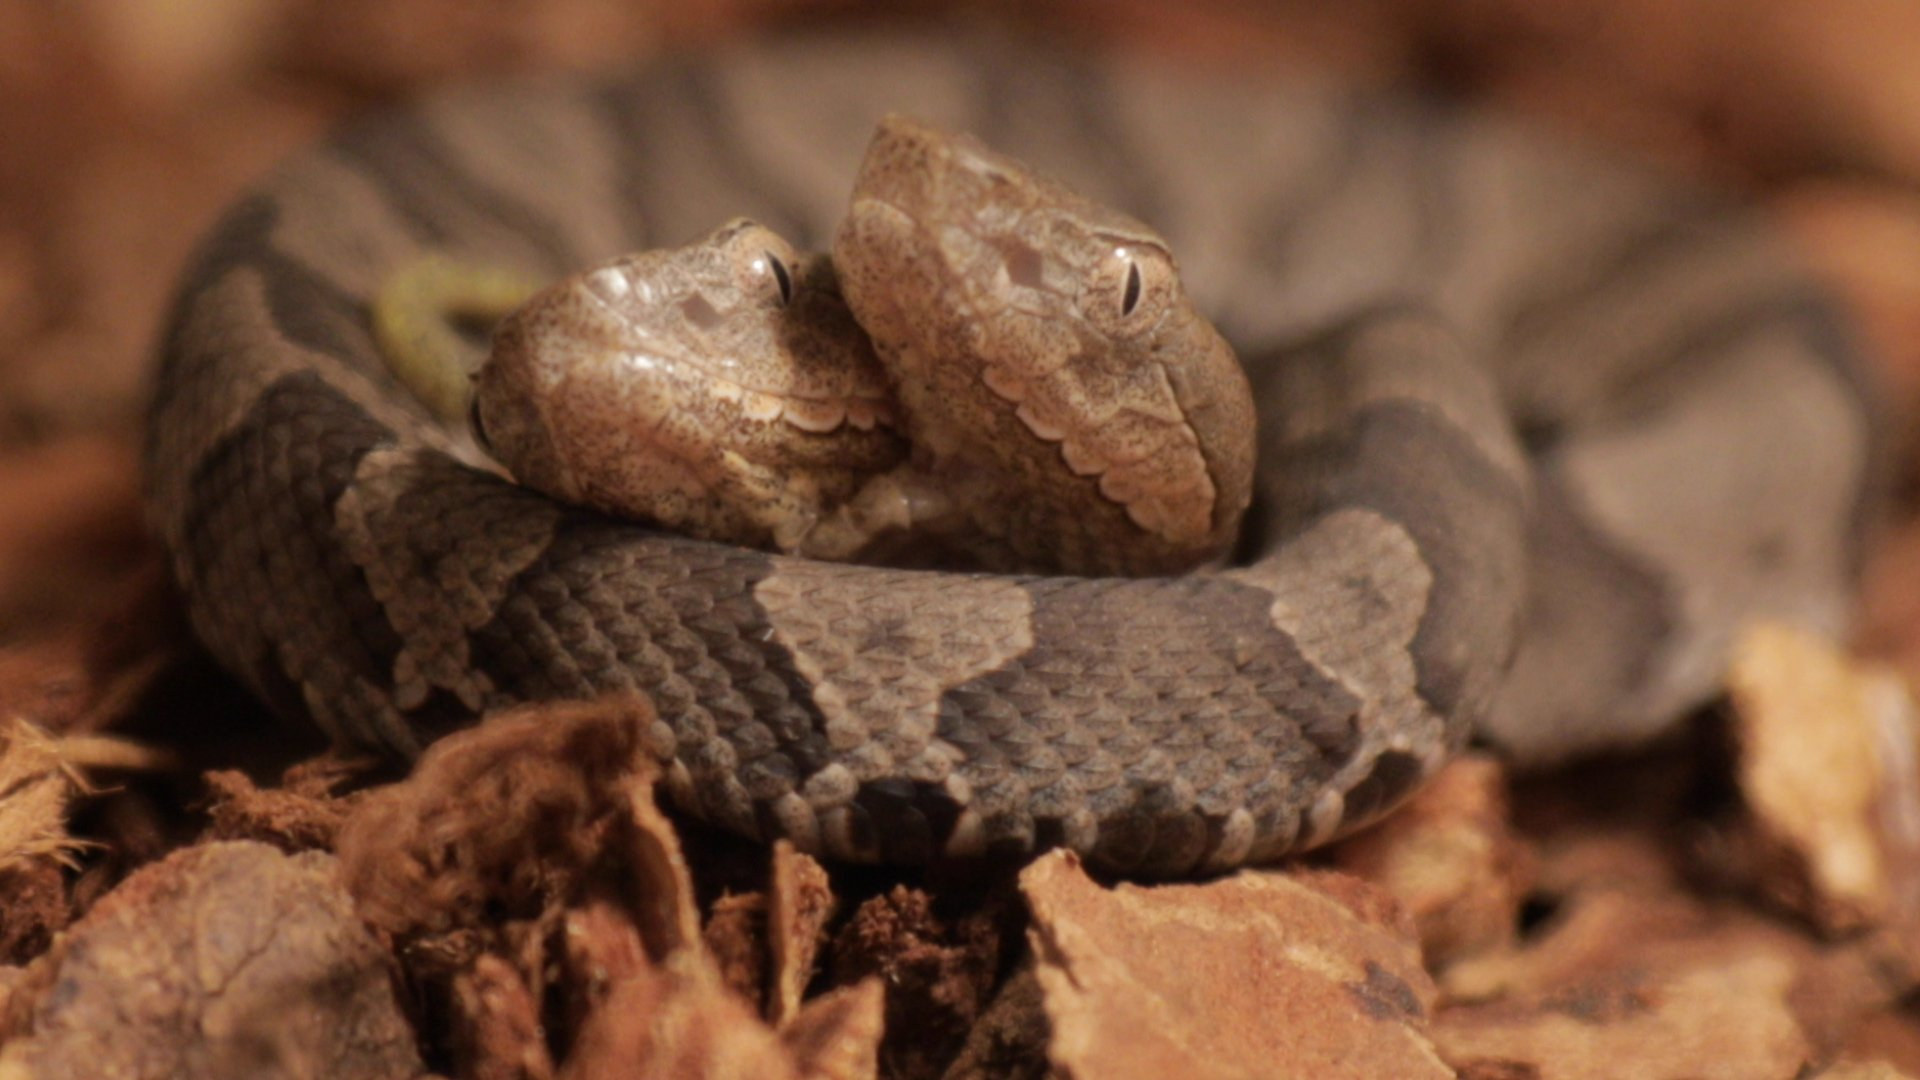 Rare two-headed copperhead snake on display beginning tomorrow at the Salato Wildlife Center in Frankfort, KY https://t.co/UNcP8f5y0Q